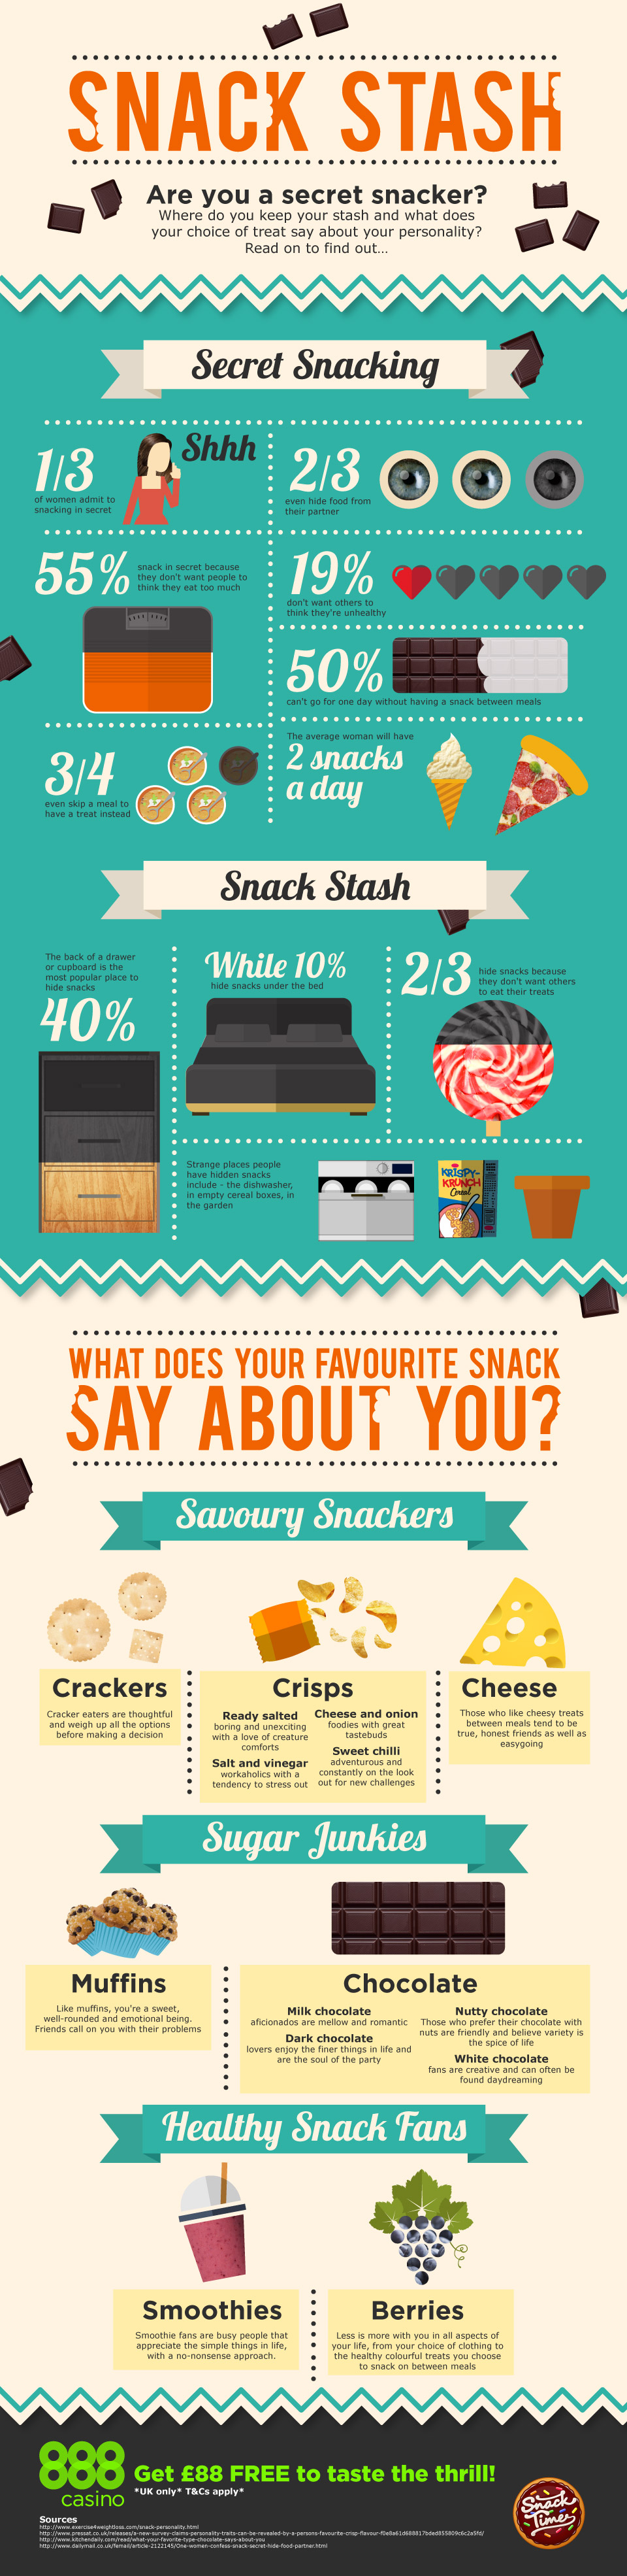 Snack Stash - What Snack Personality Are You?